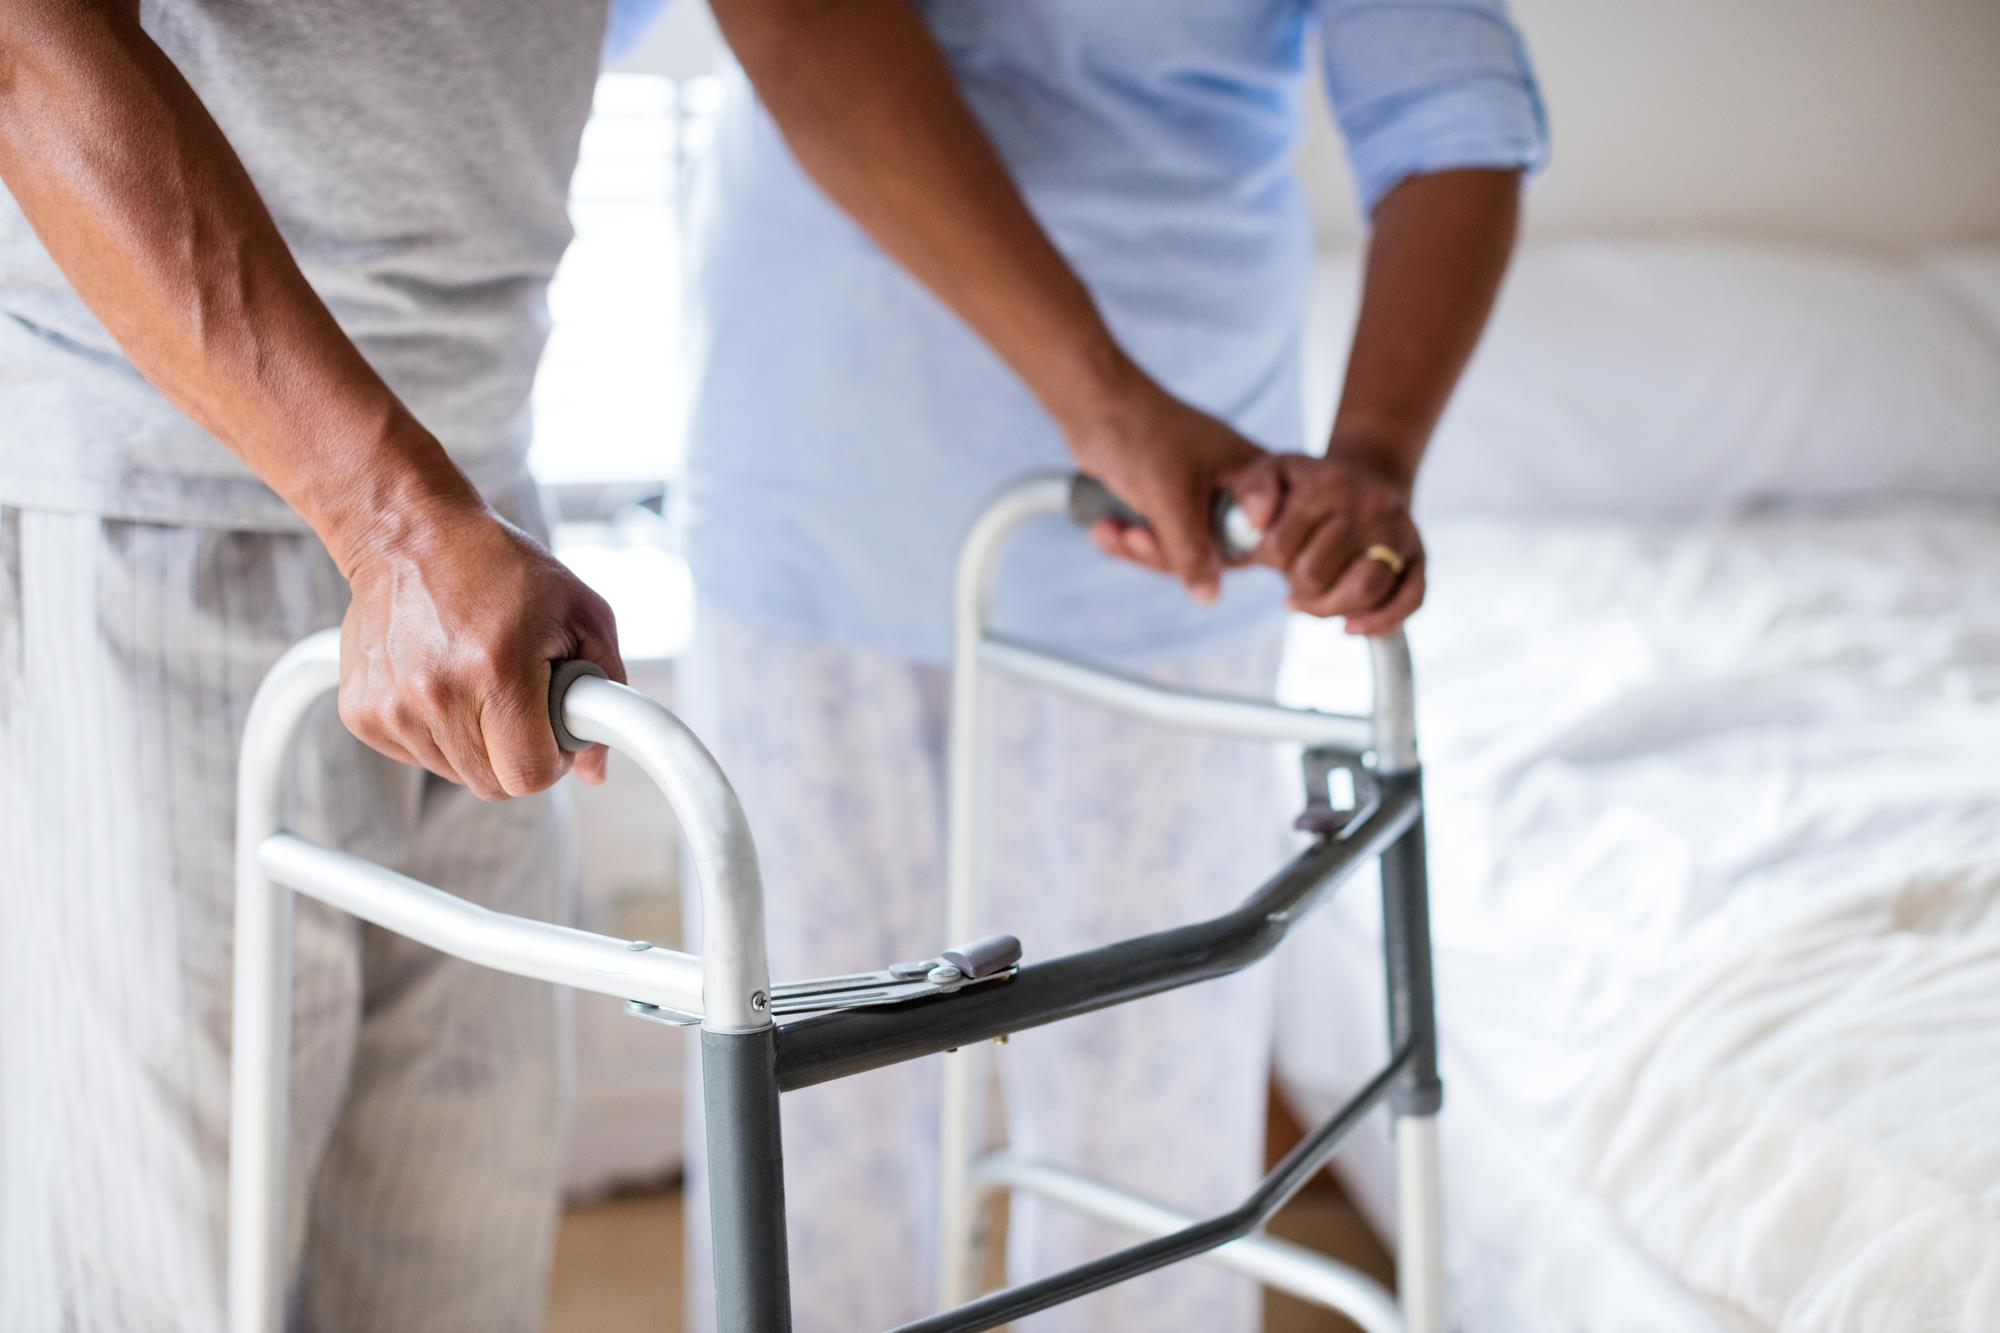 Reduce falls at home with these handy tips to stay on your feet